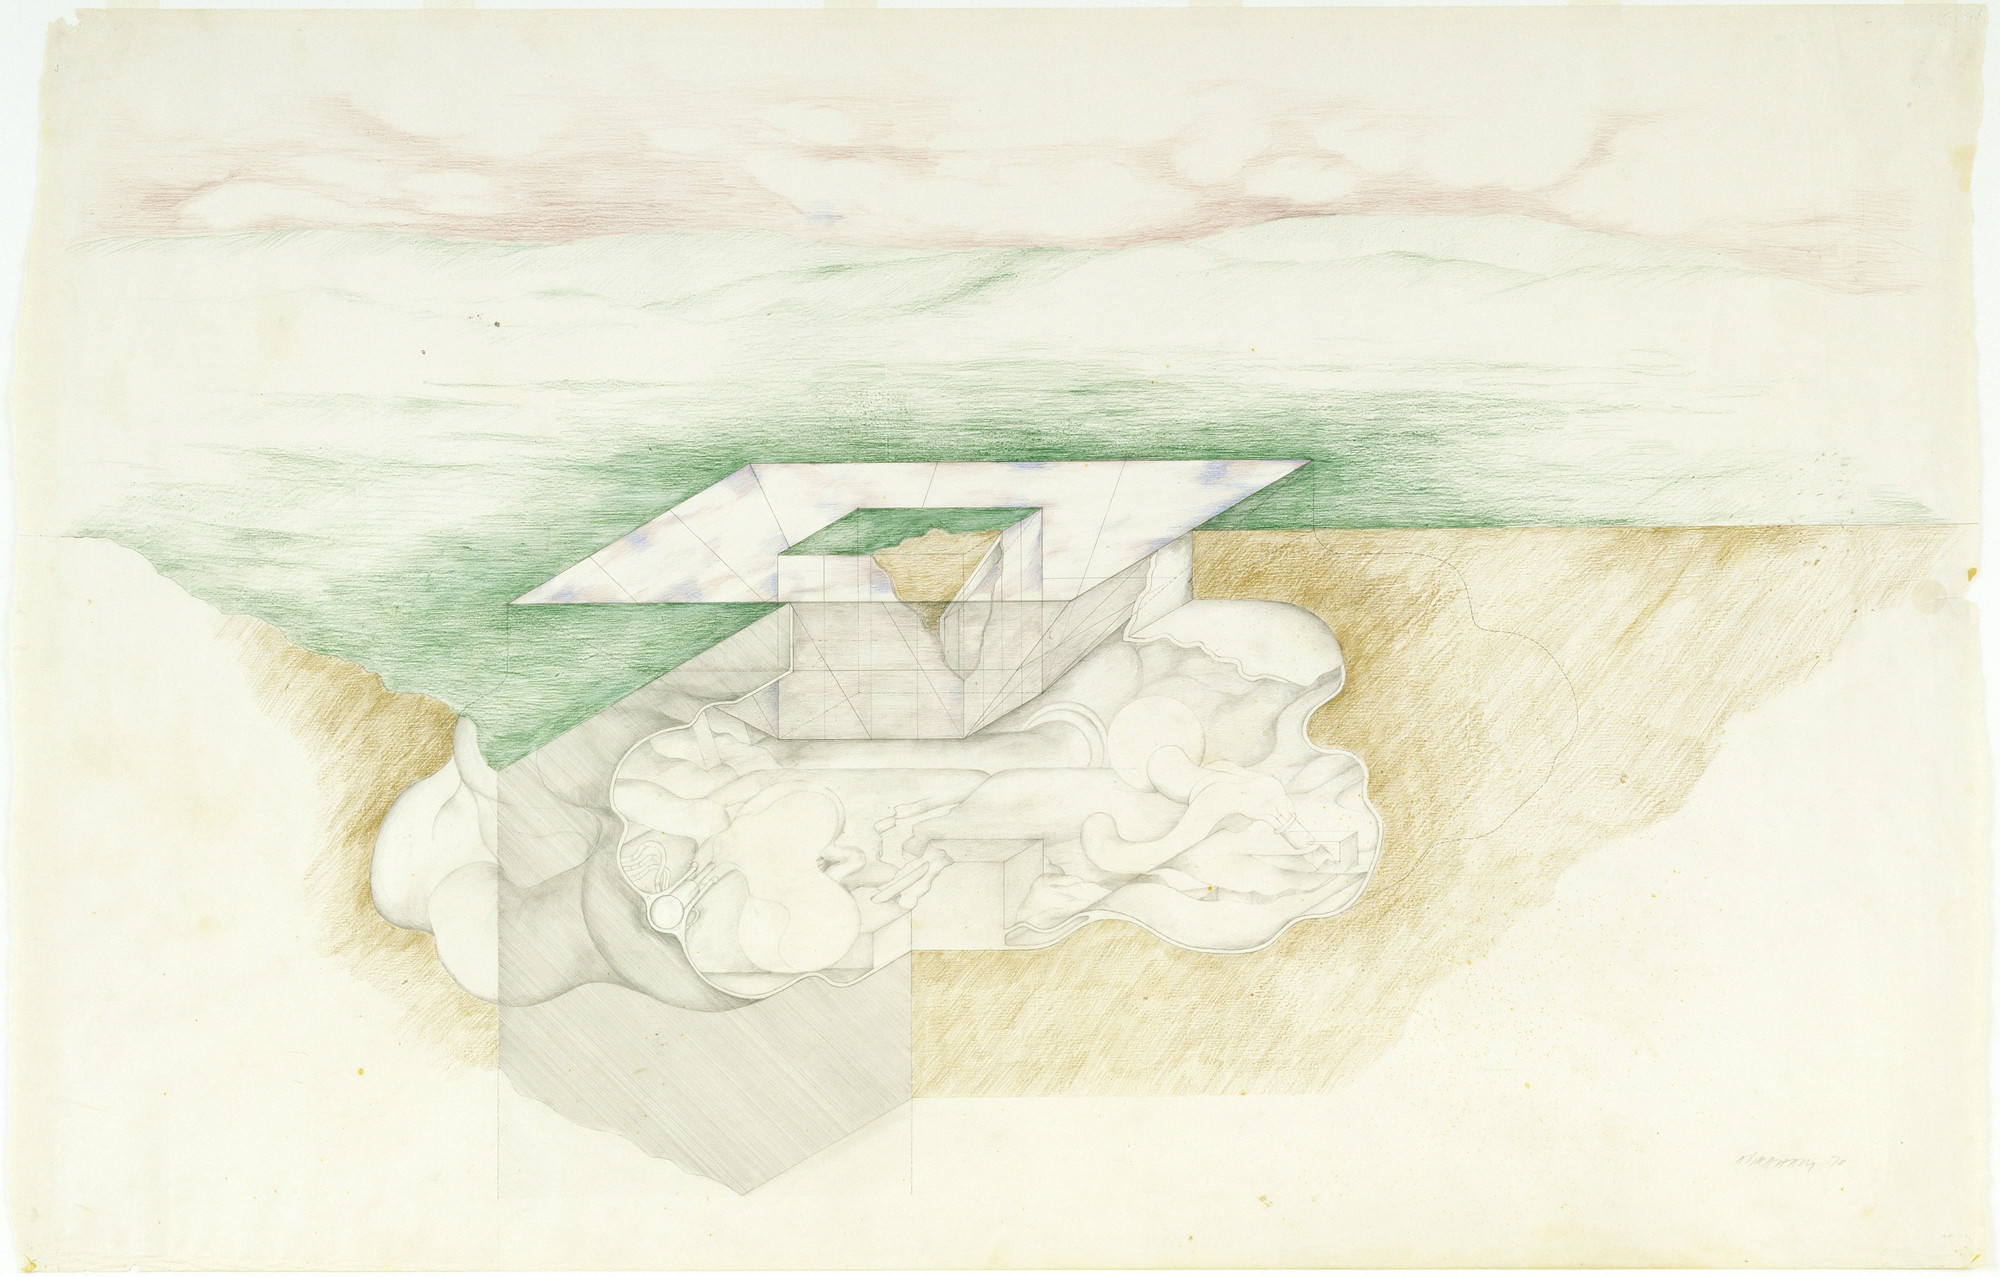 Raimund Abraham. Earth-Cloud House, project. 1970